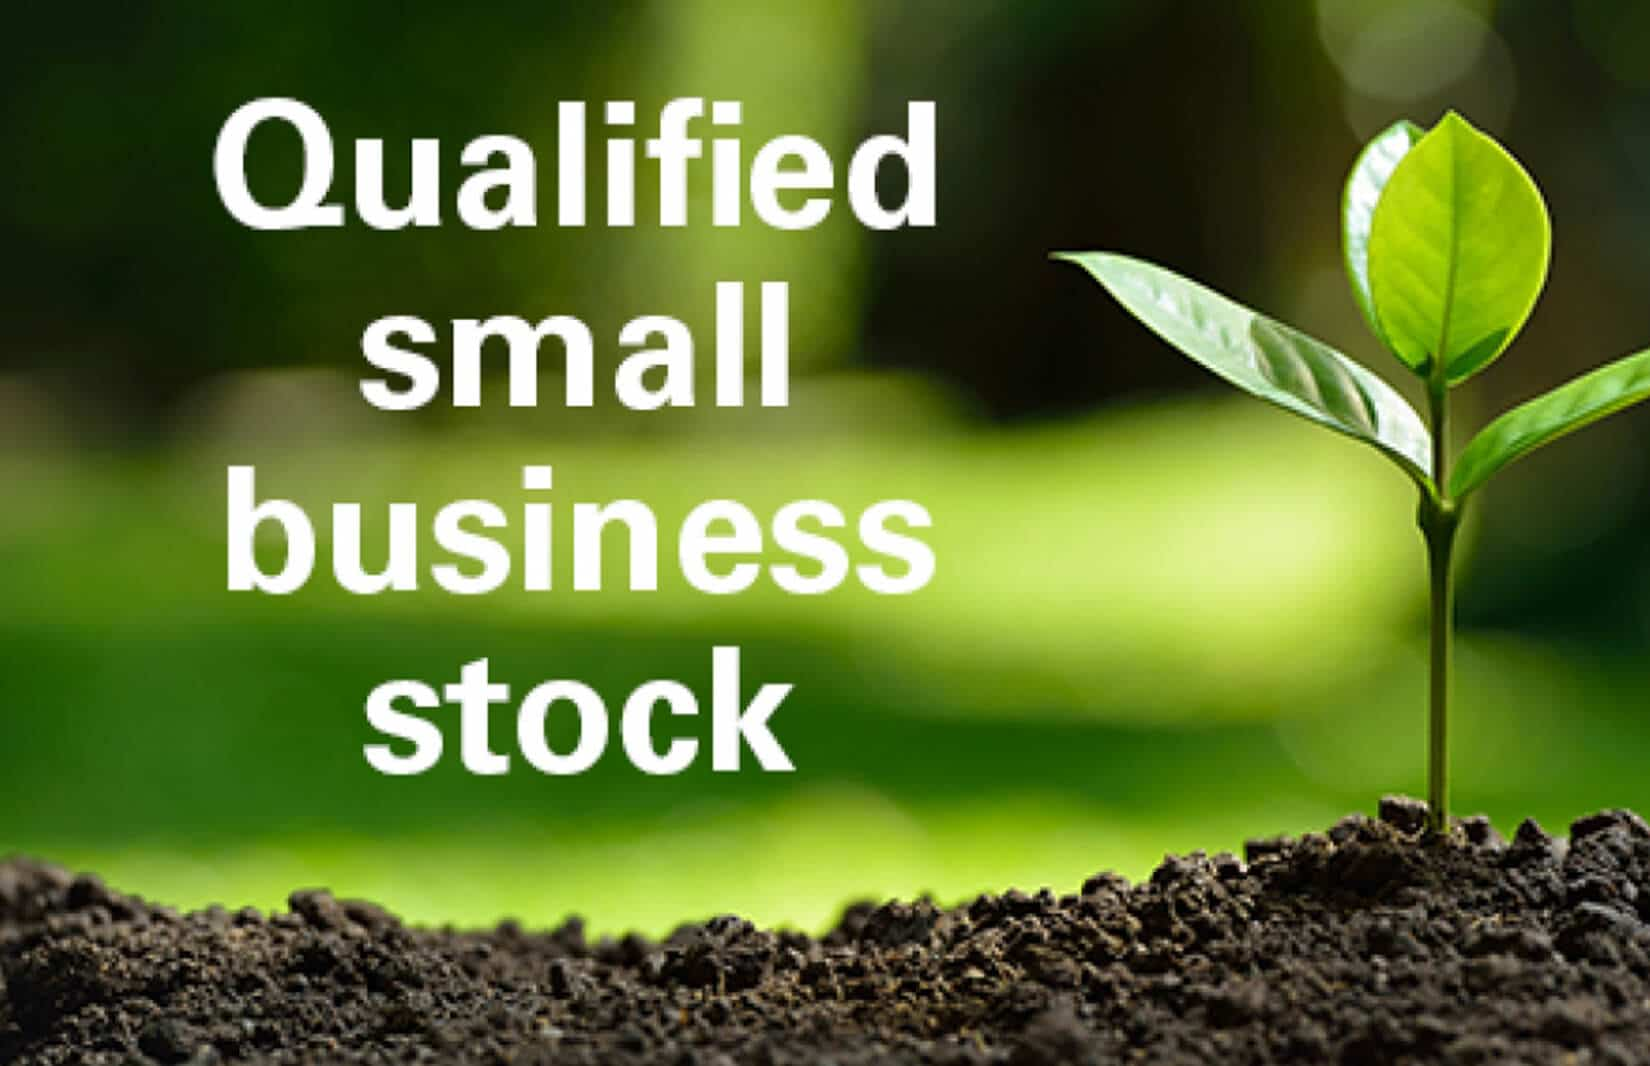 Small Business Stock Advantages for Taxes